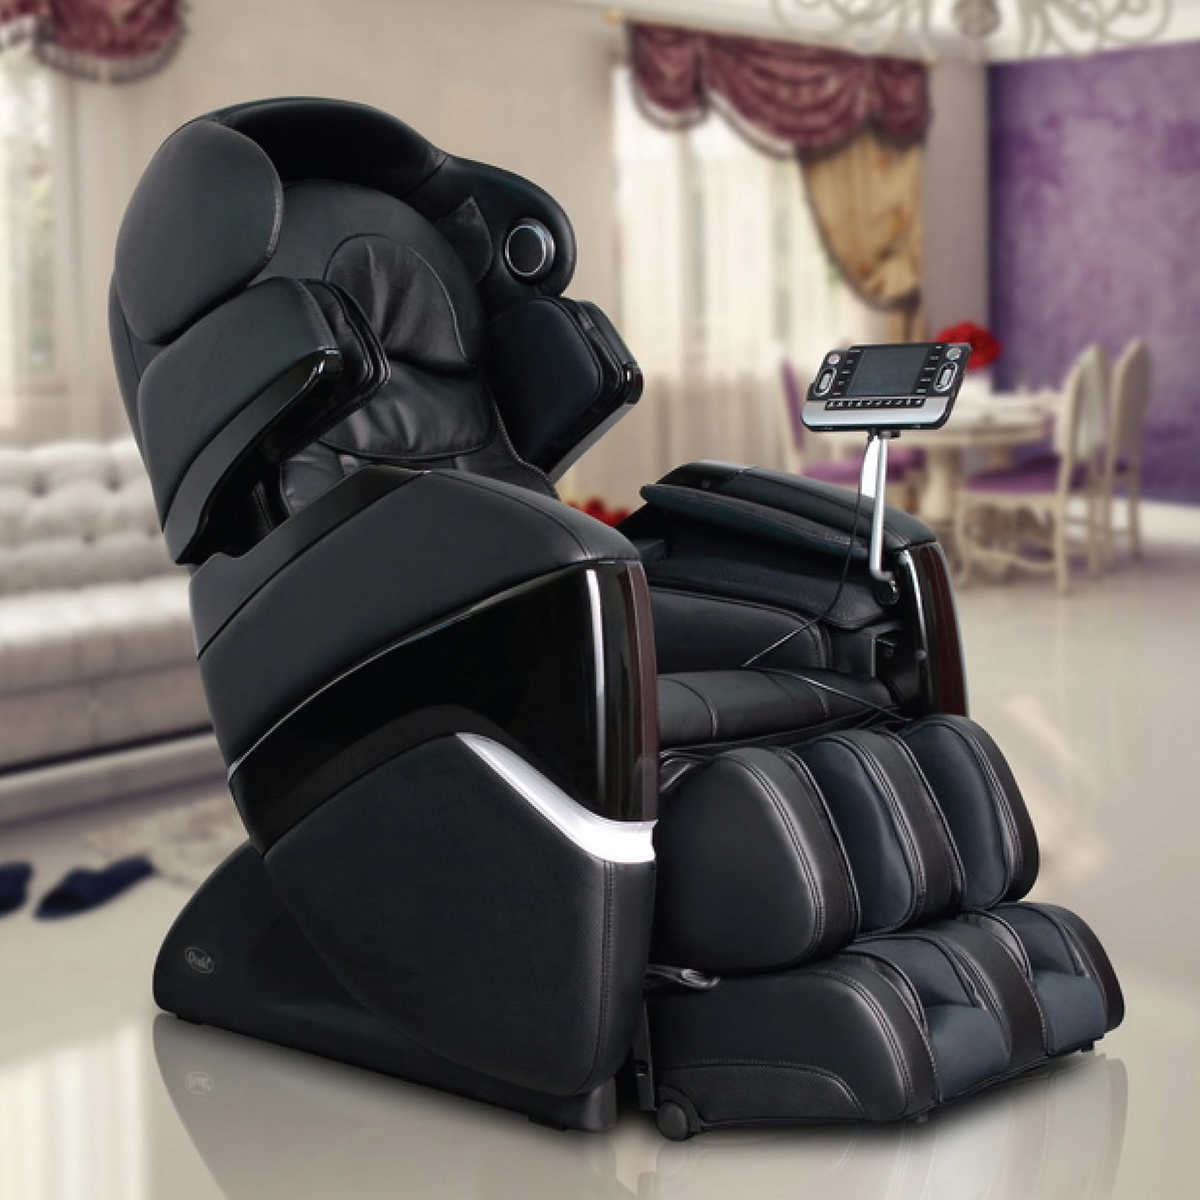 massage-chair-with-warranty-to-apply